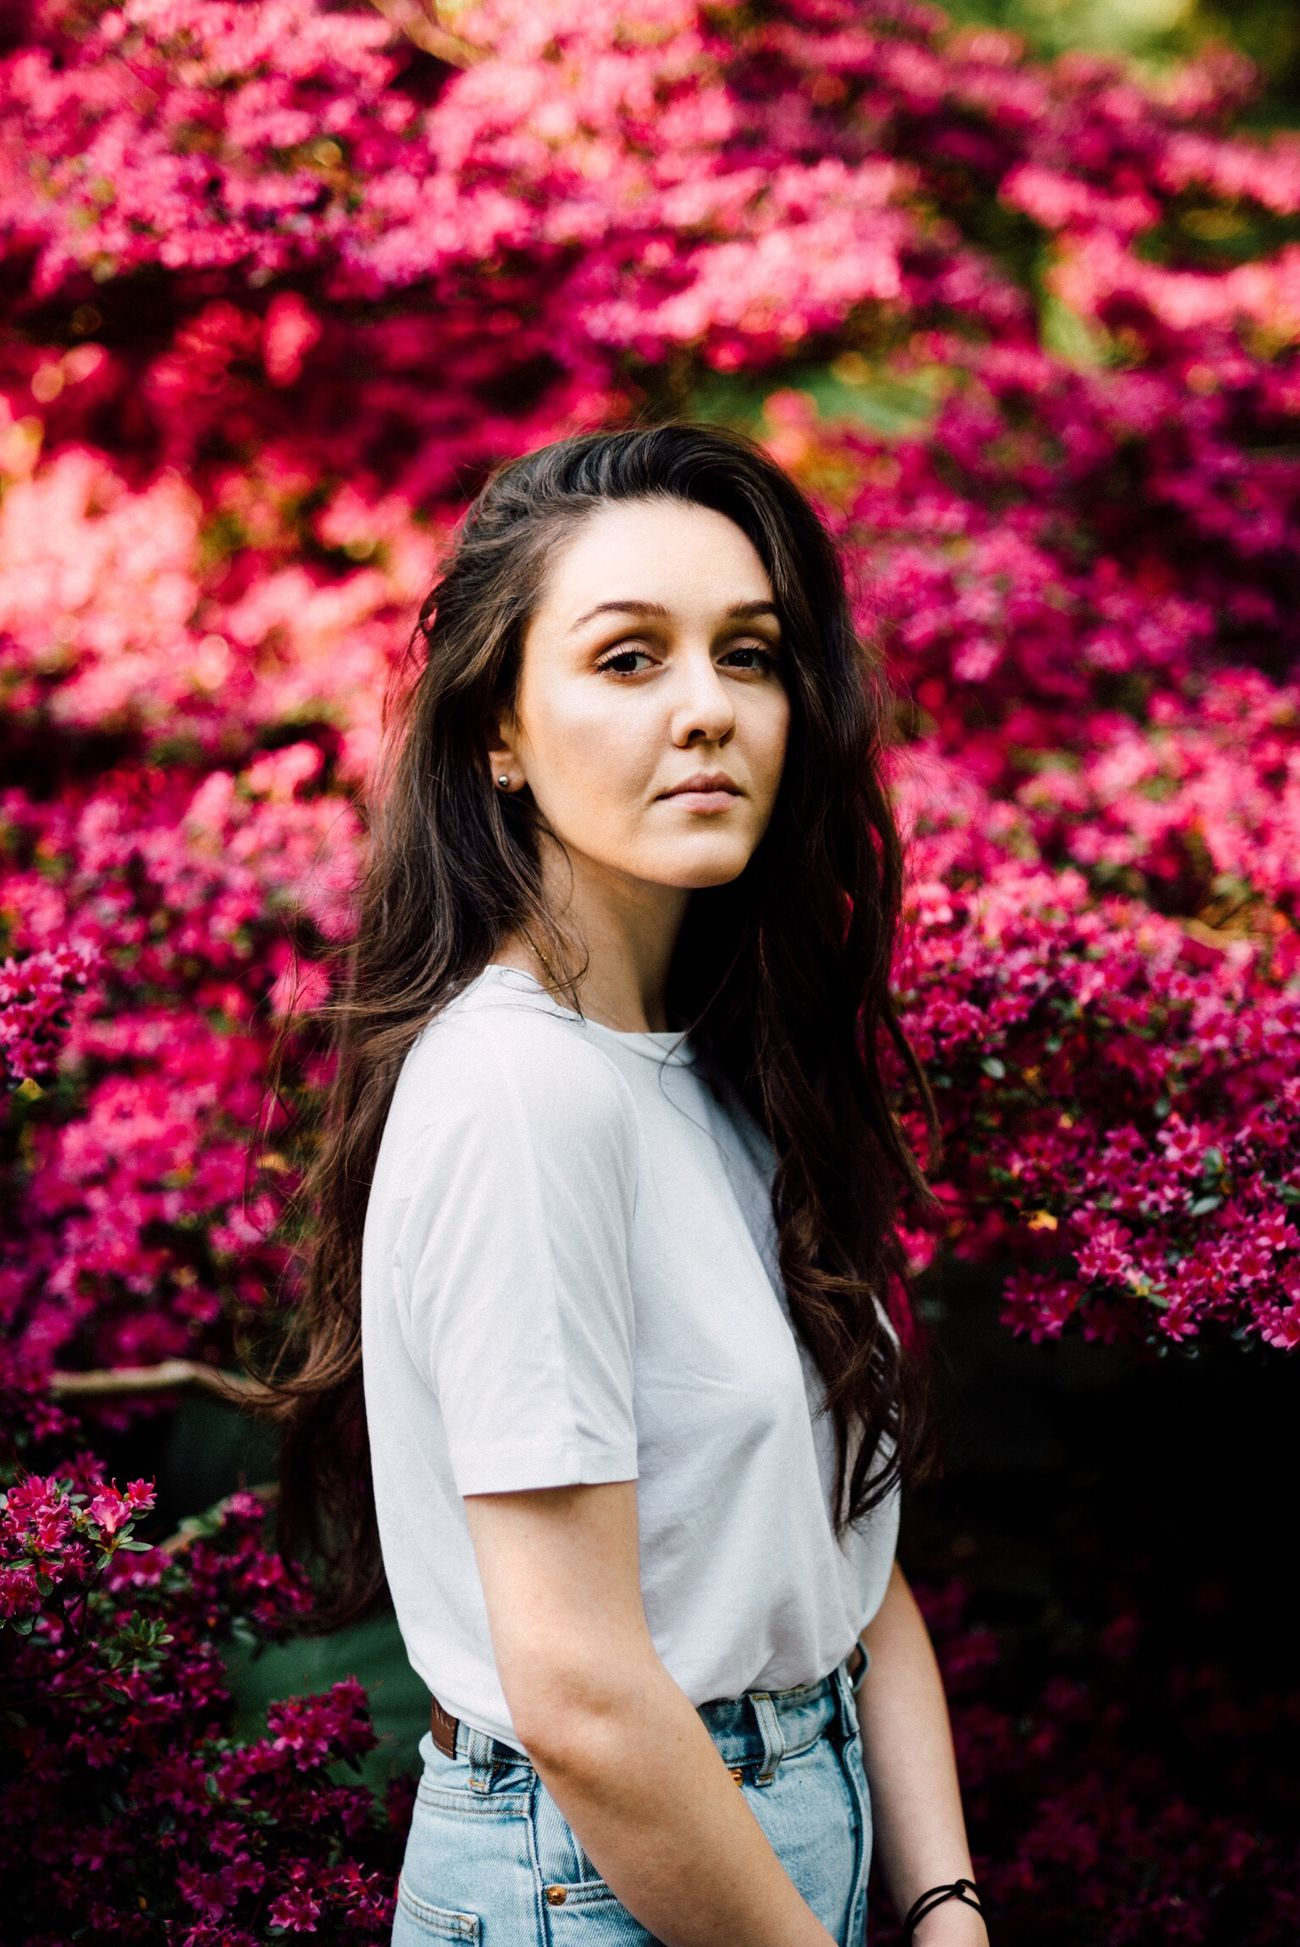 melis Flower Only Women Long Hair Beauty Beautiful Woman Adult One Person Beautiful People One Woman Only Adults Only Portrait Outdoors Nature Women One Young Woman Only People Tree Springtime Beauty In Nature Human Body Part EyeEmBestPics EyeEm Gallery EyeEm Best Shots